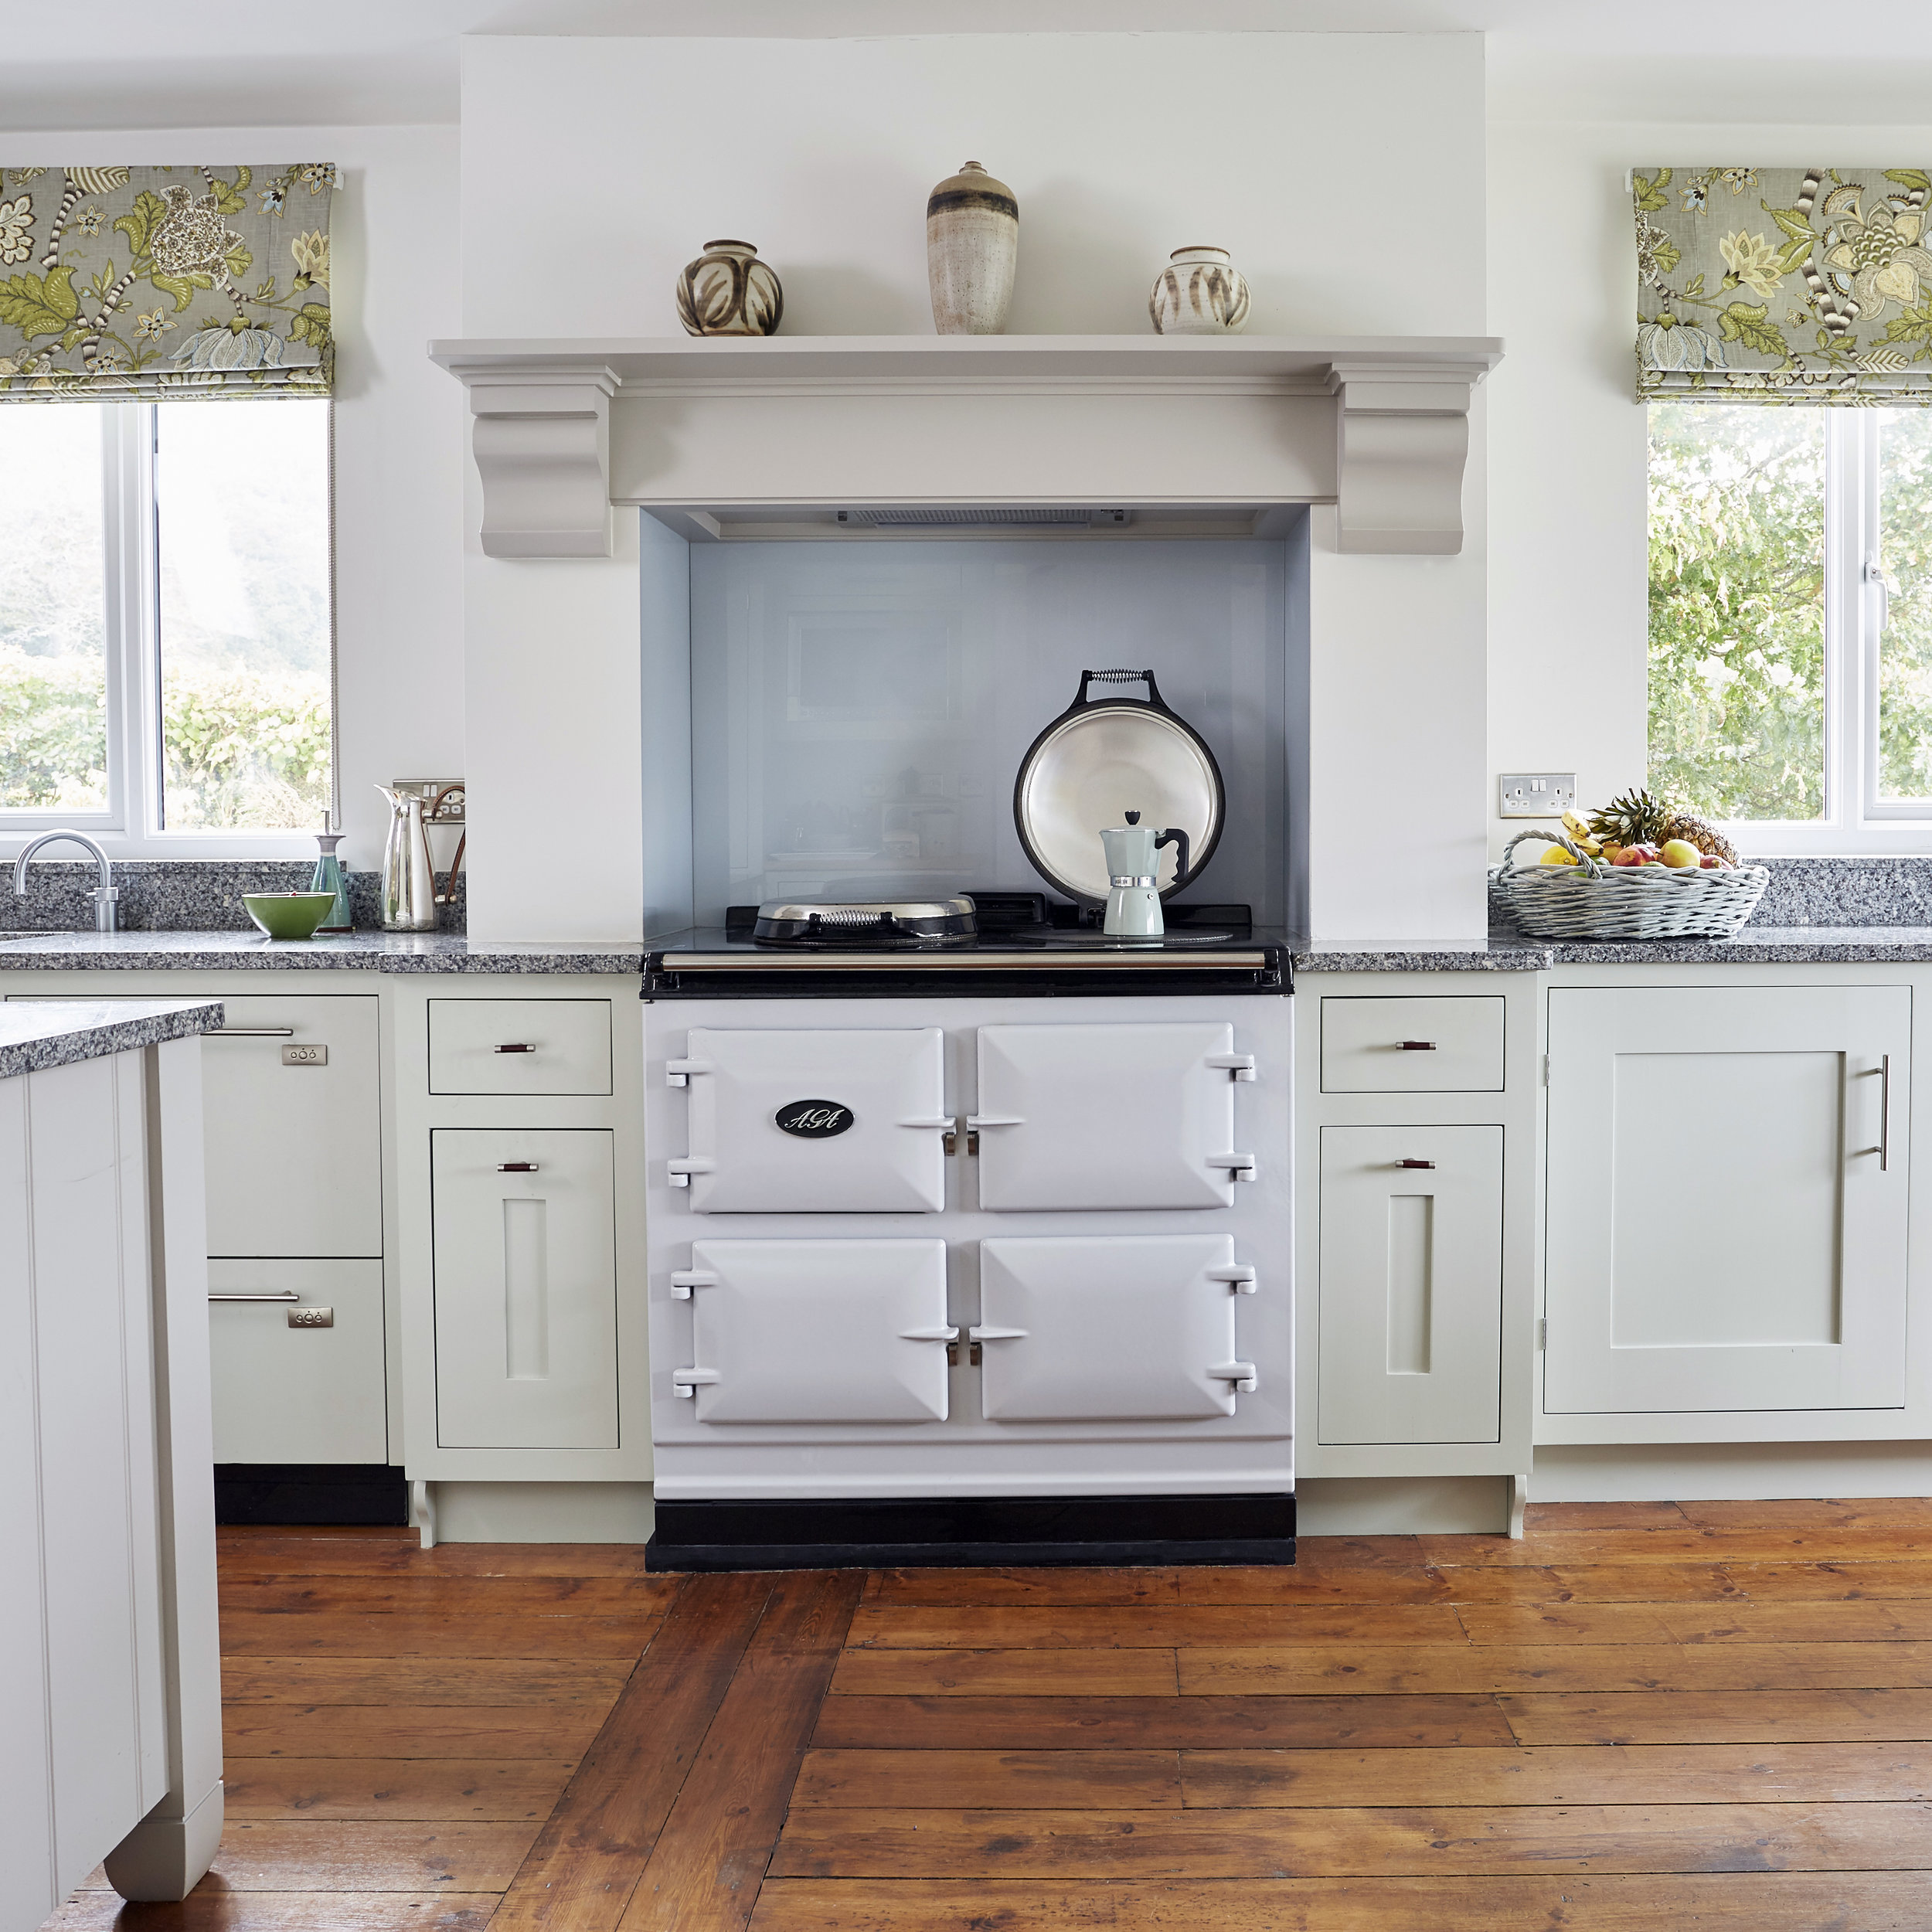 AGA Total Control 3-oven in Pearl Ashes